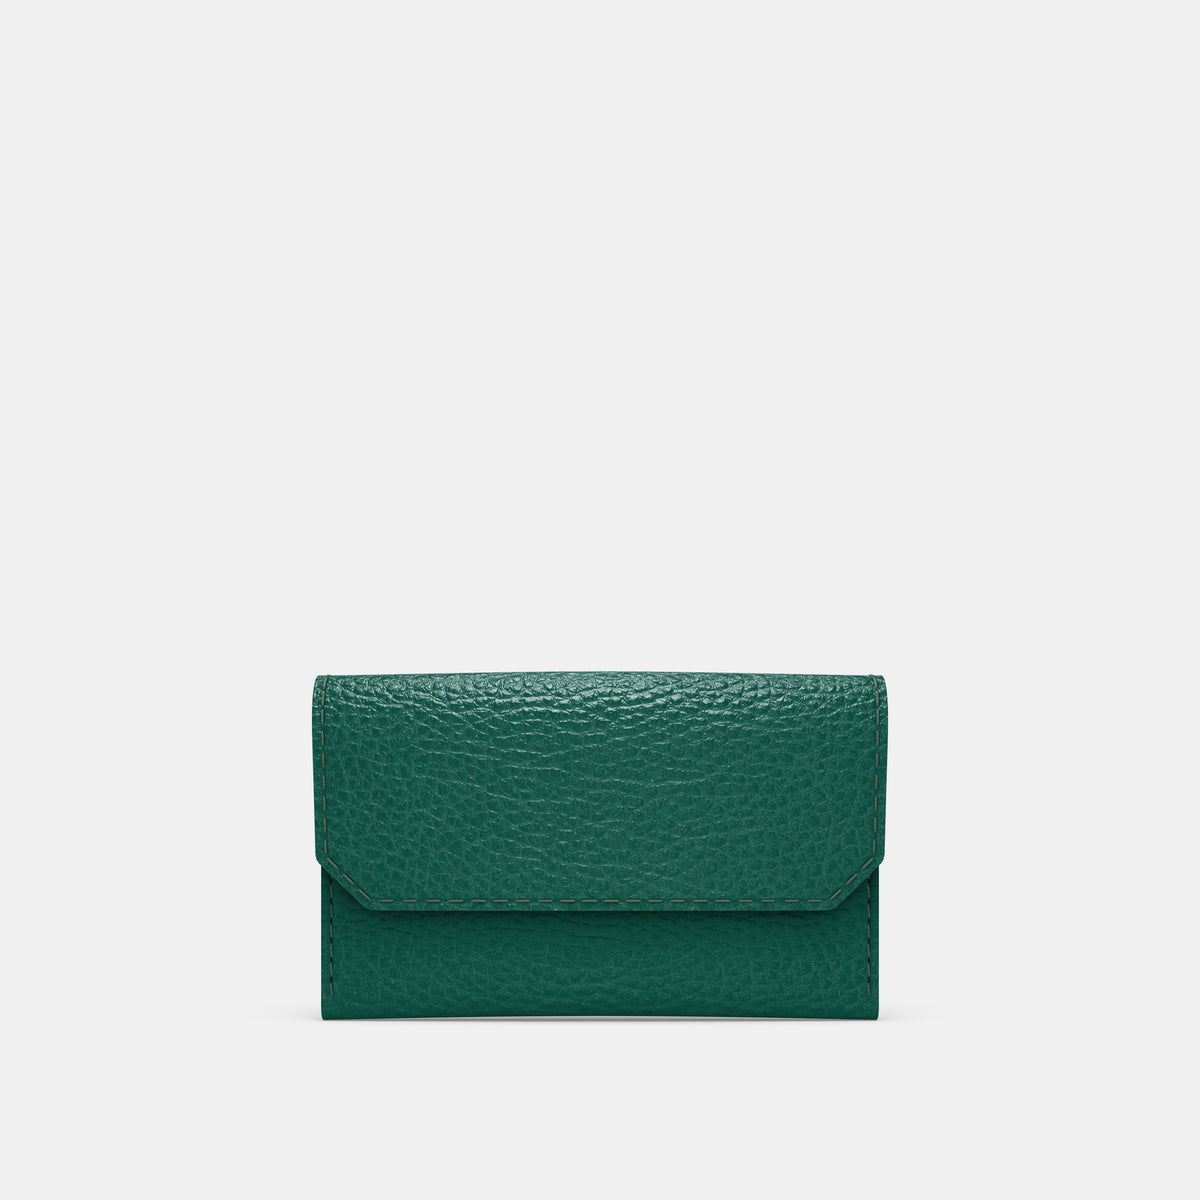 Carry-all Wallet - Avocado and Orange - RYAN London